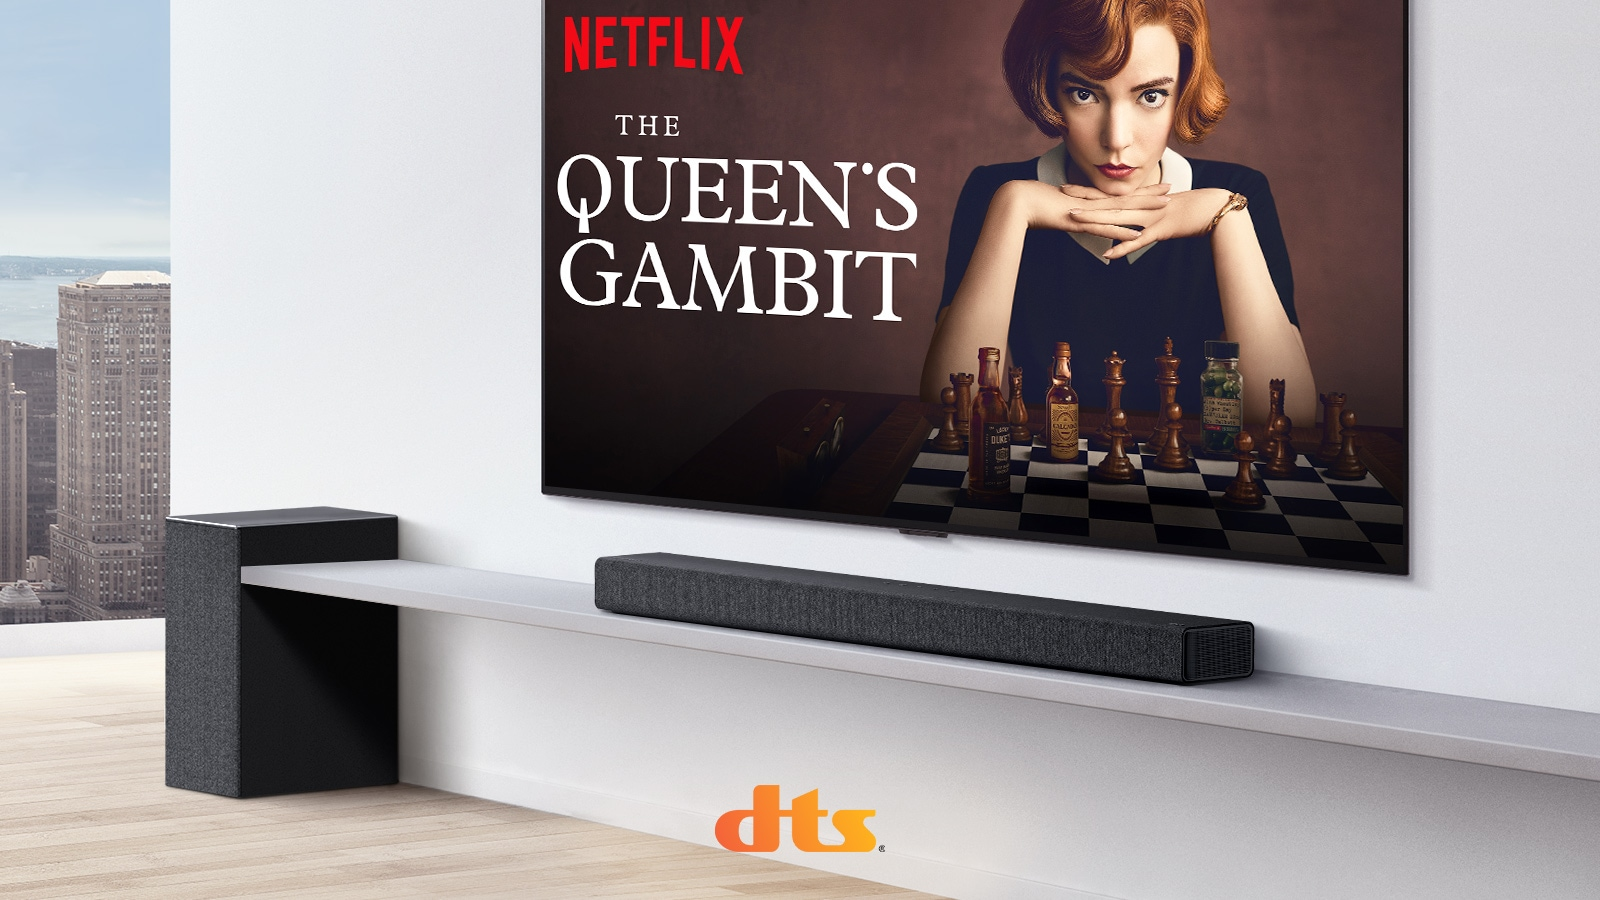 TV is on the wall.  A poster of a TV show is on TV screen. LG Soundbar is right below TV on a white shelf with a sub-woofer right next. Dolby Atmos and DTS:X logo shown on middle bottom of image.